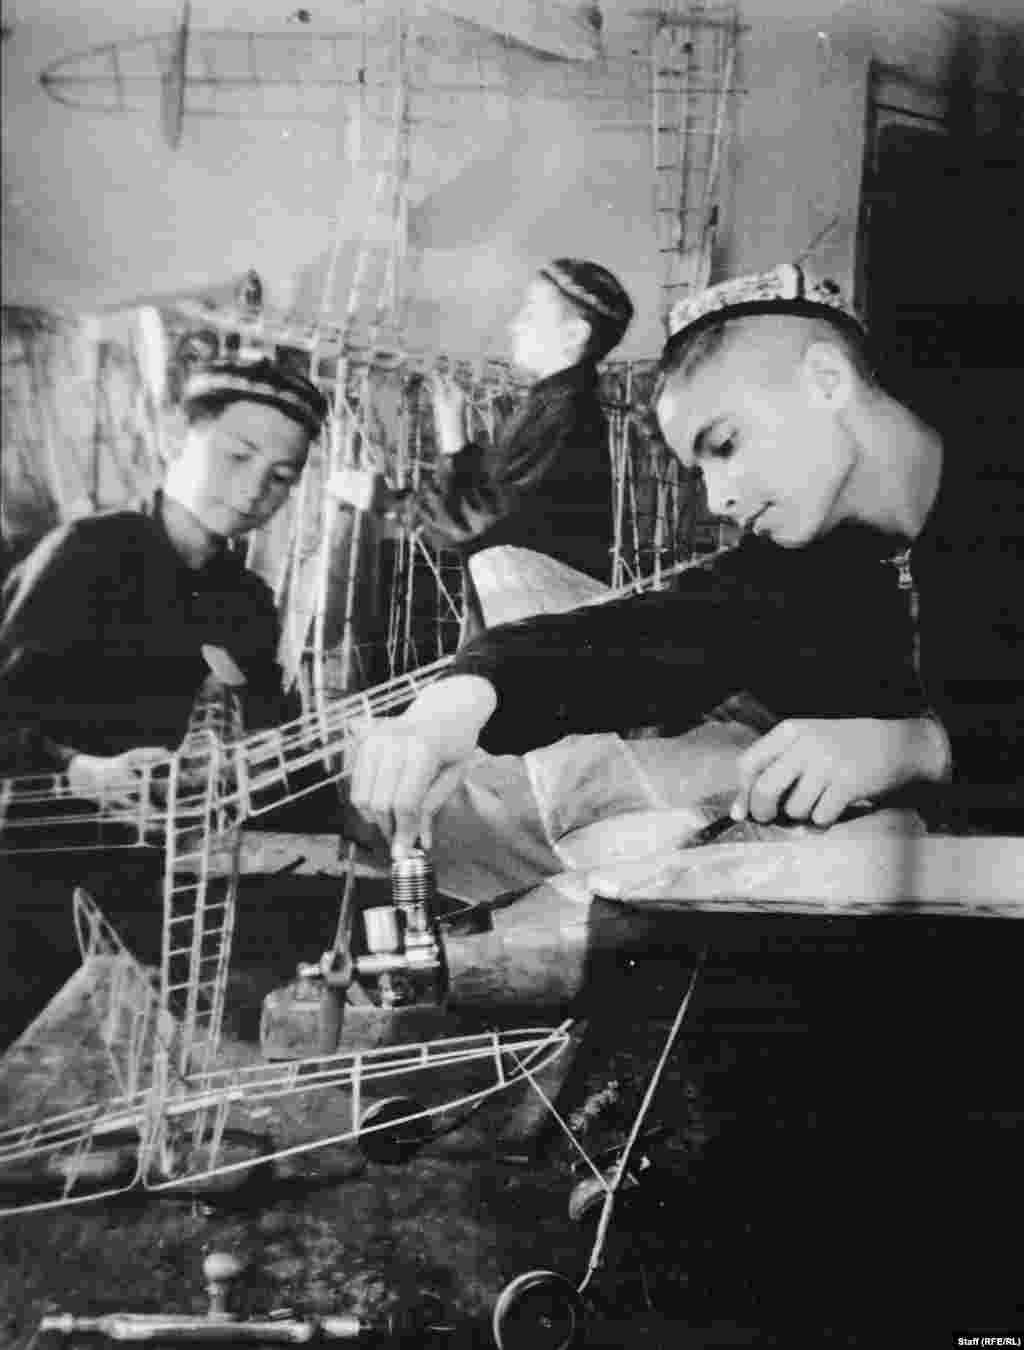 Islam Karimov (right) making a model airplane. In the 1940s the young Karimov, who would later lead the Uzbek Communists and then become Uzbekistan's first president, was sent to, then removed from, then finally sent back to an orphanage.